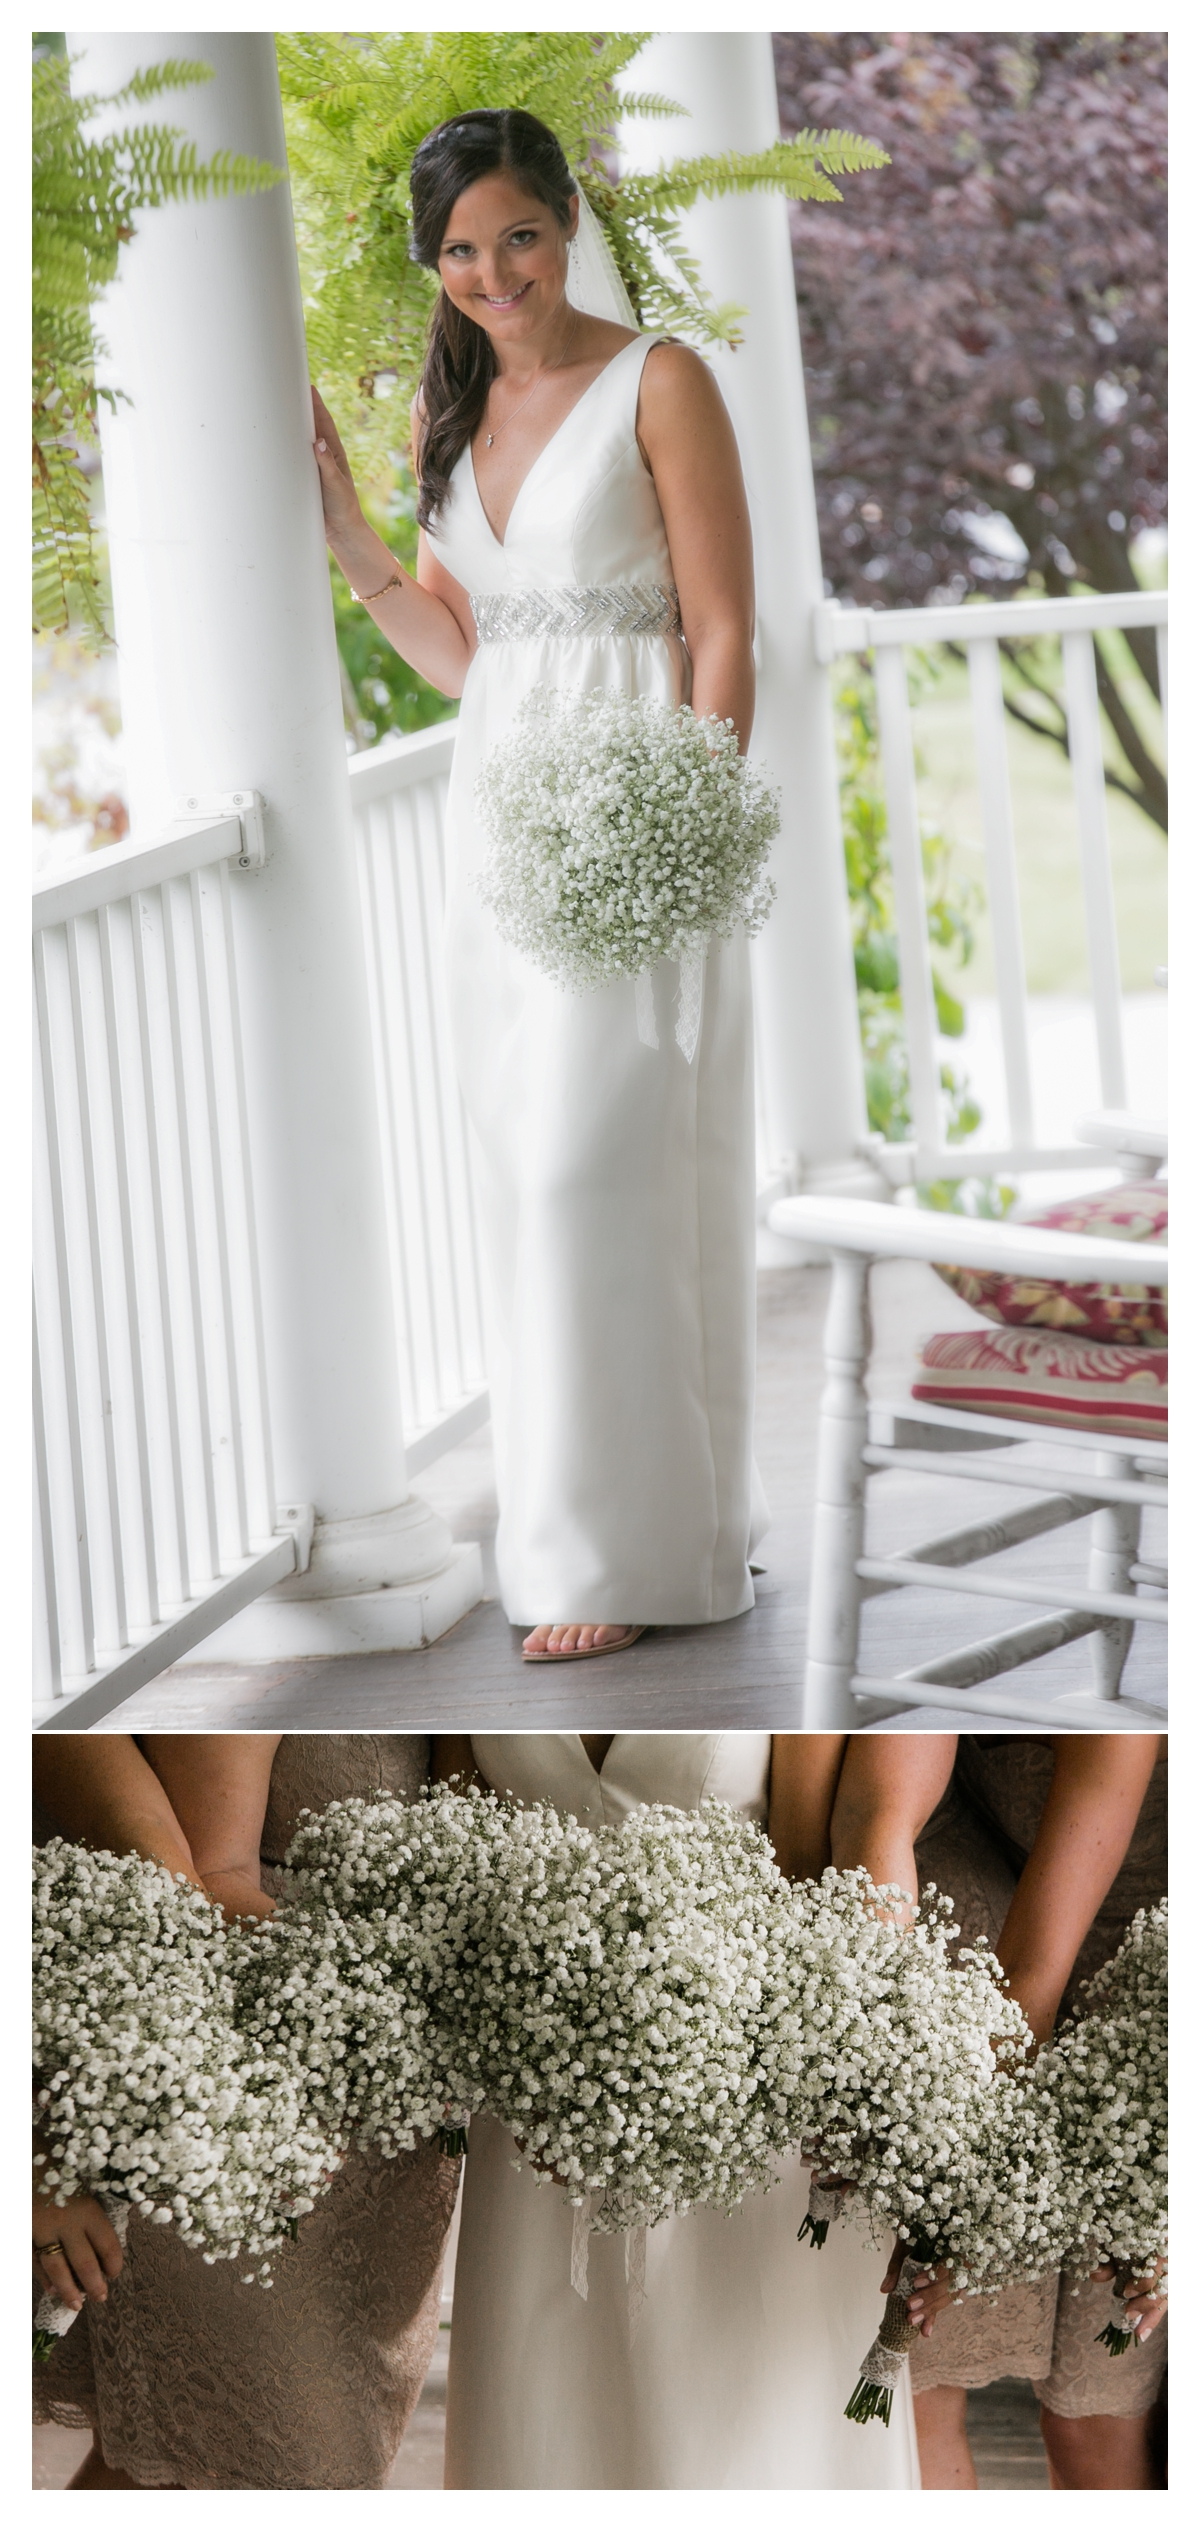 Bride on front porch of barn with babies breath bouquet